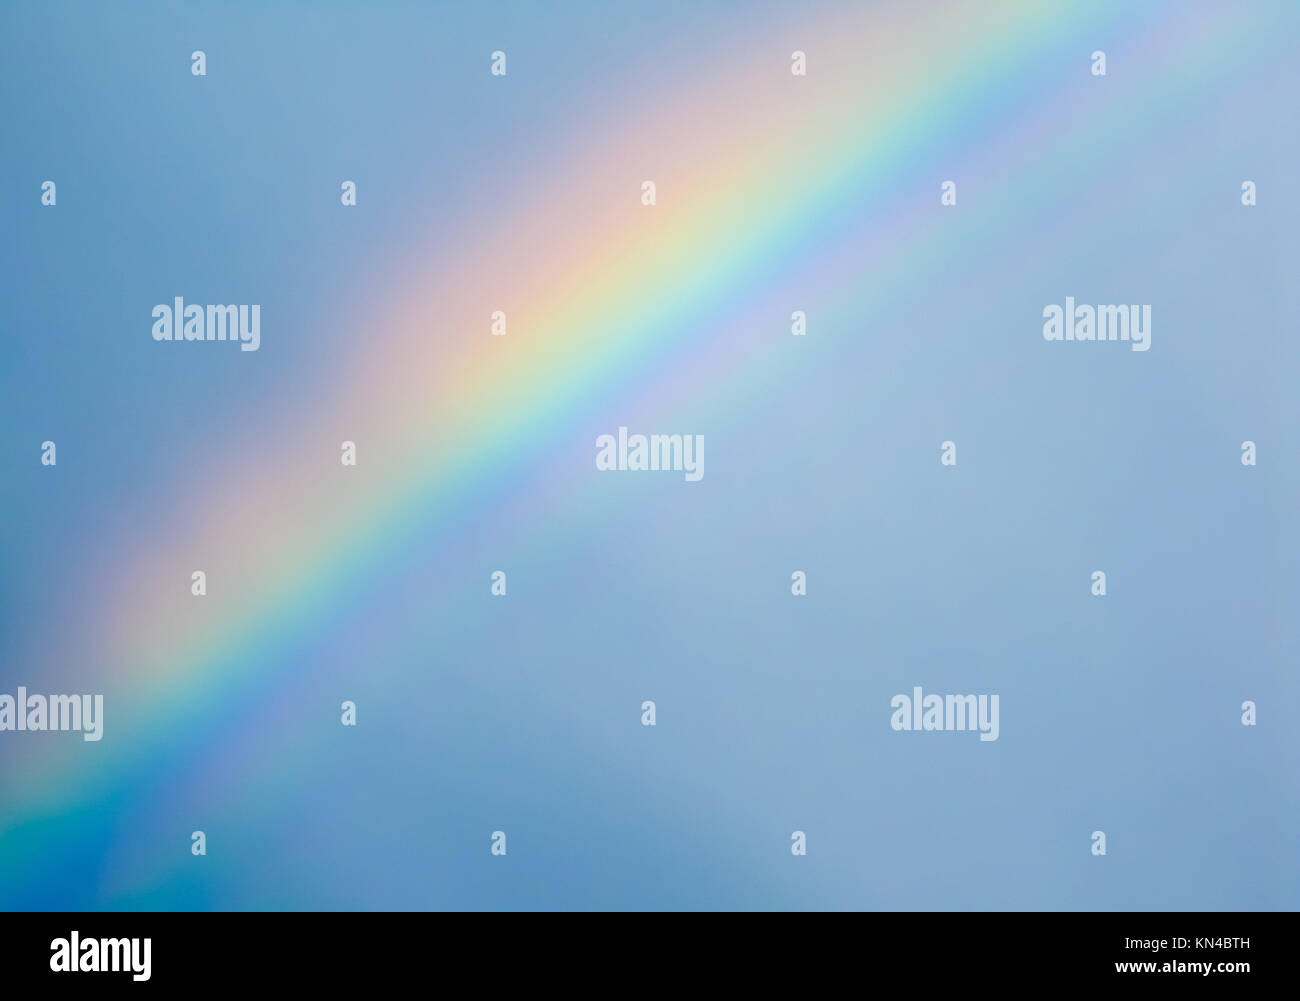 Rainbow on blue sky after rain. Stockholm, Sweden. - Stock Image